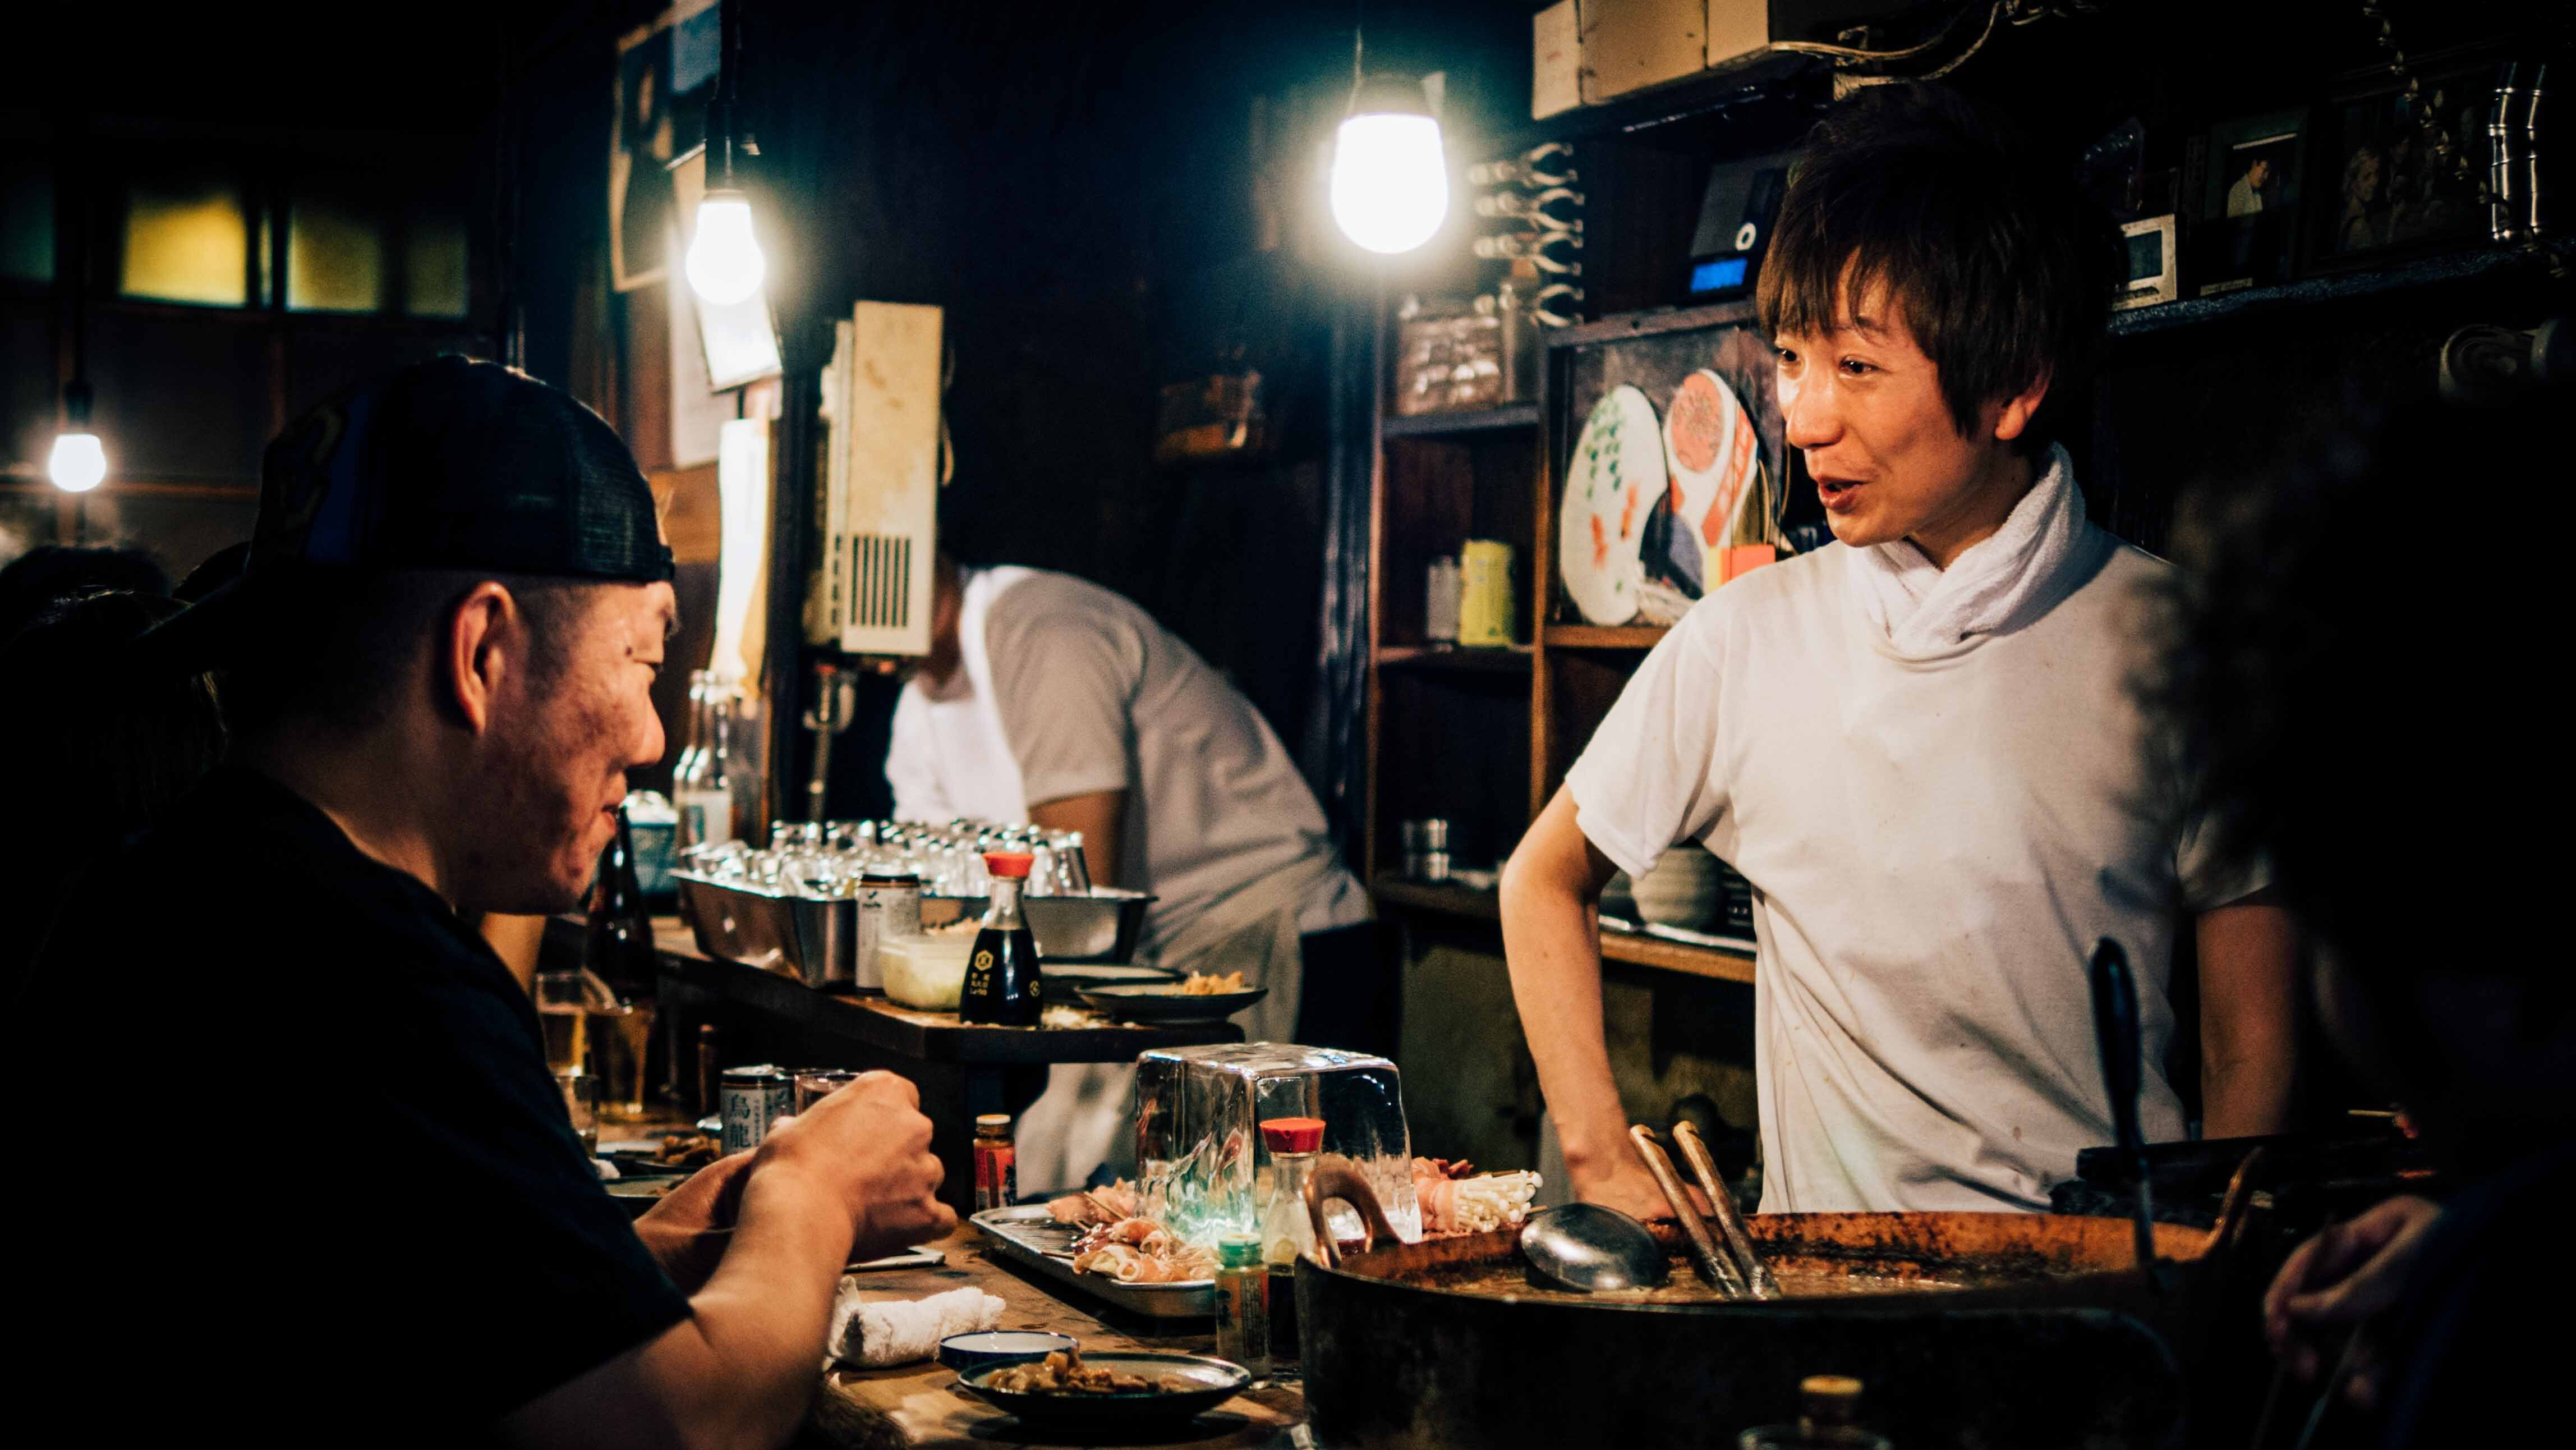 Japanese izakaya chef and diner